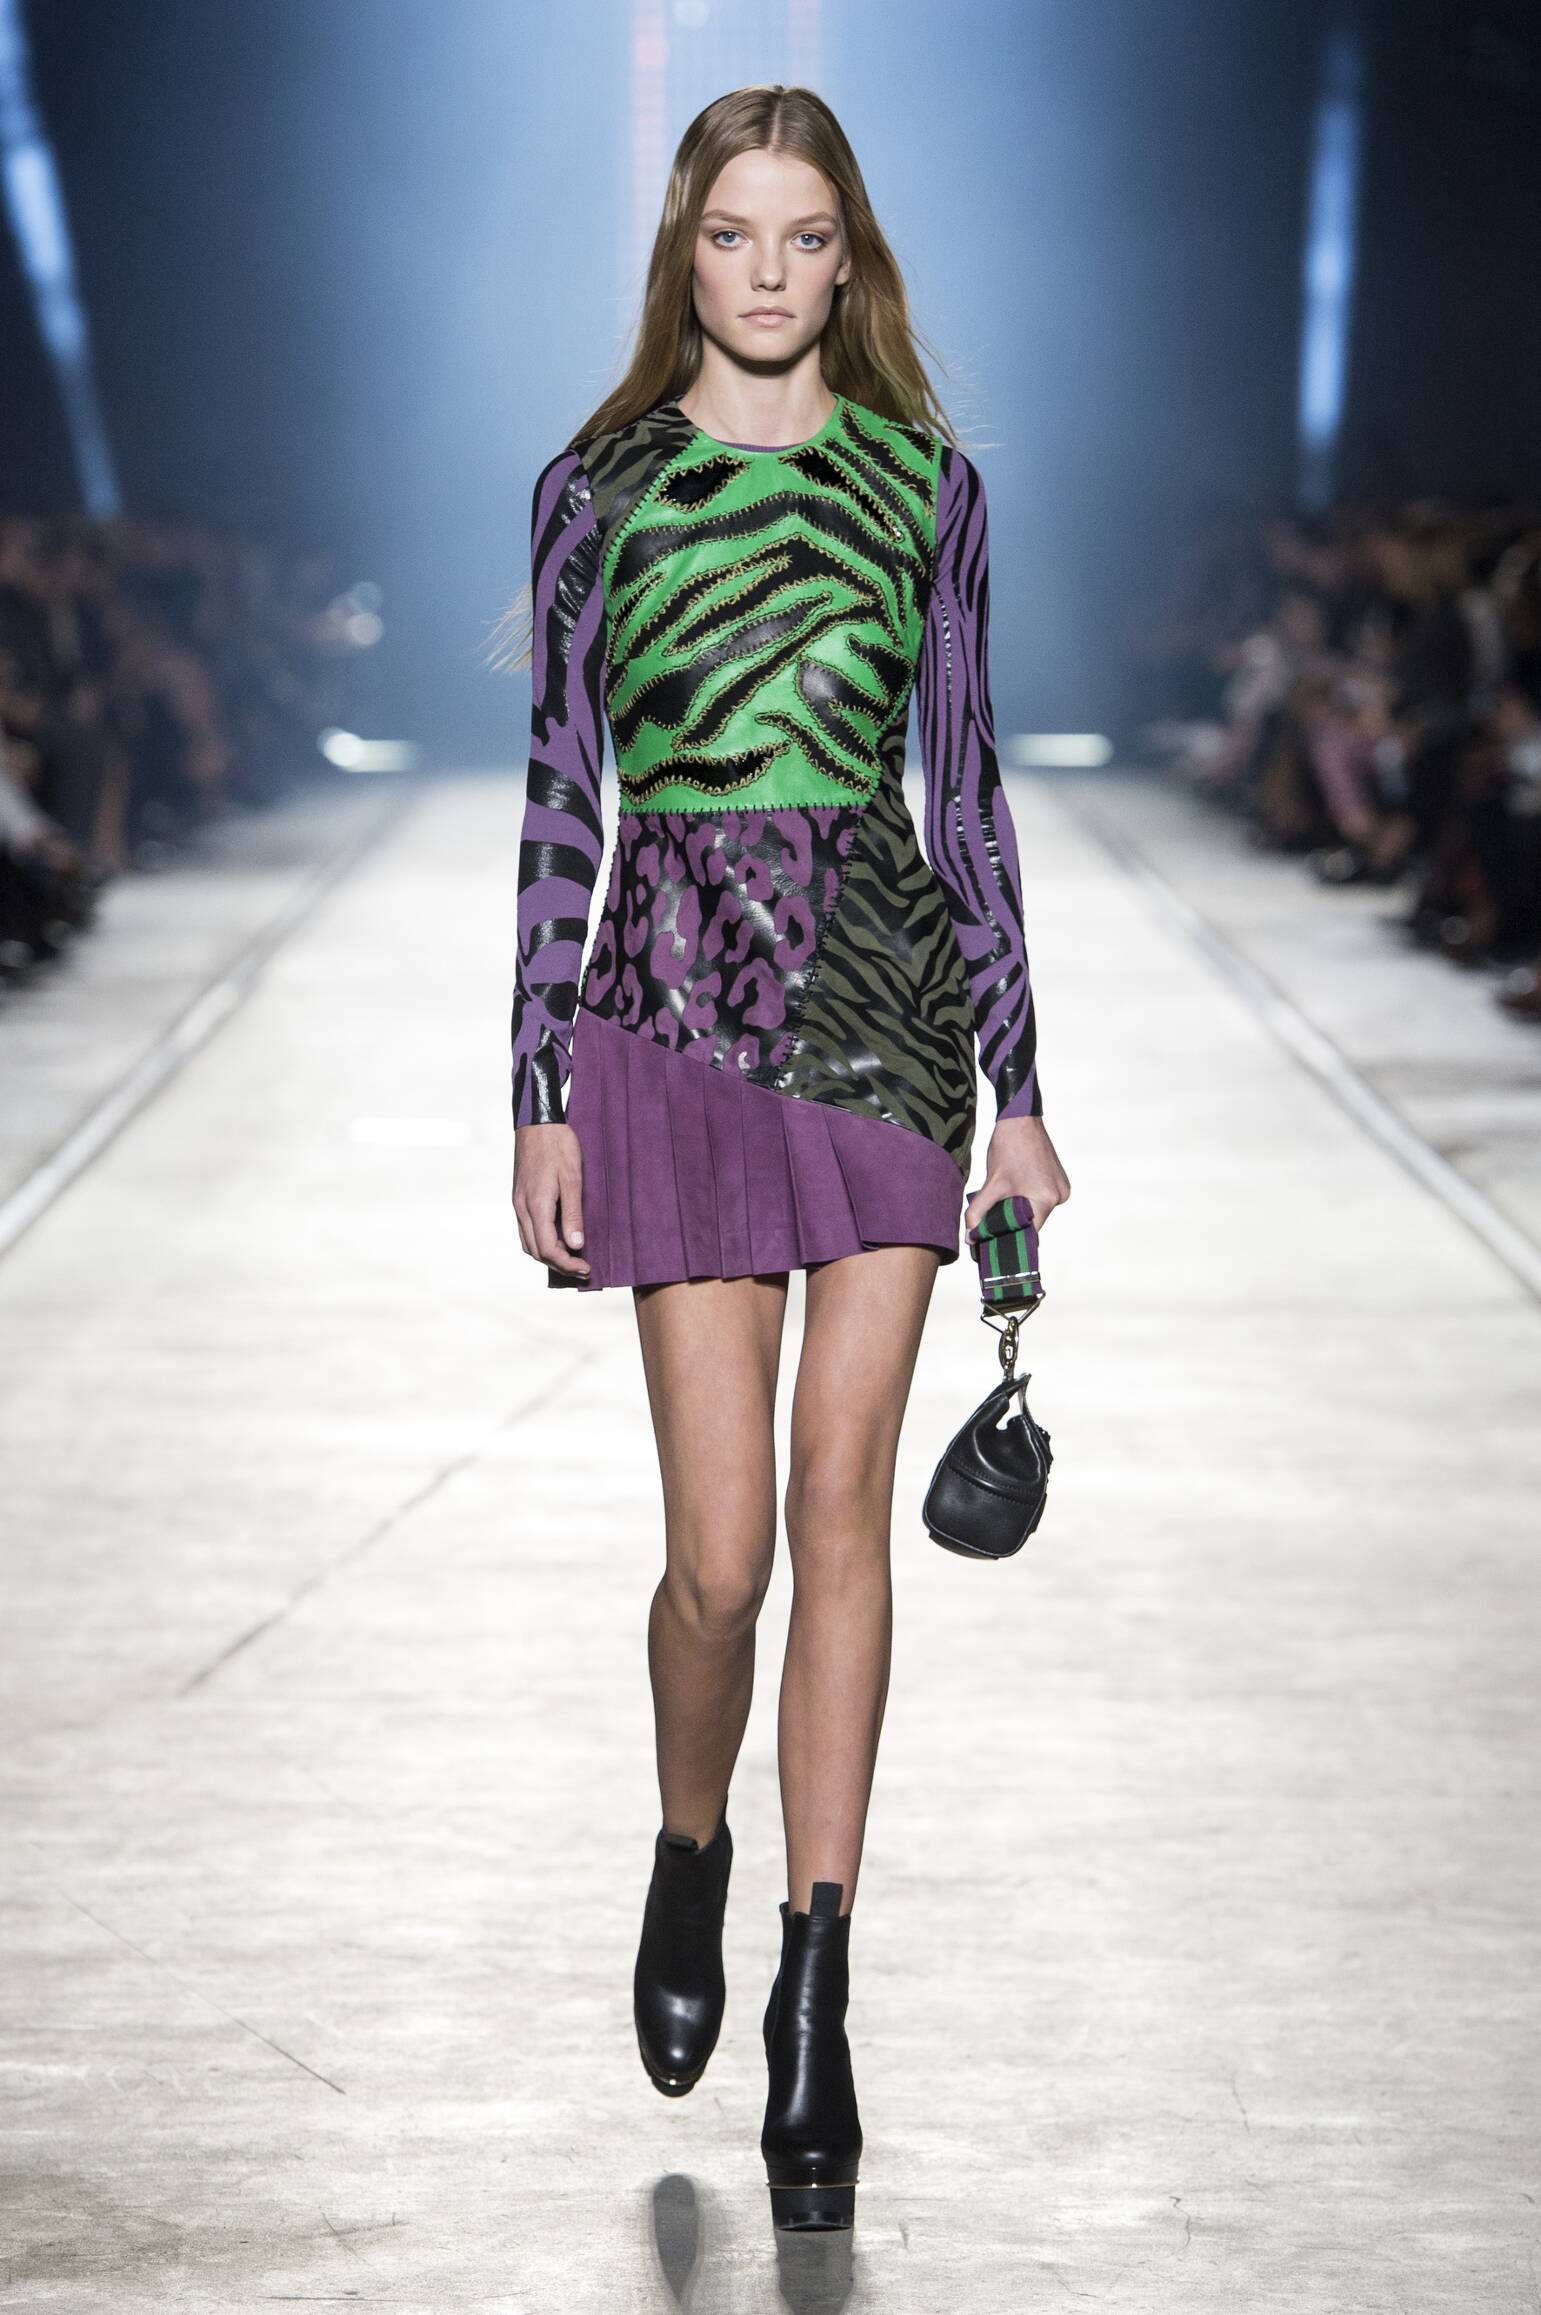 d103d169 VERSACE SPRING SUMMER 2016 WOMEN'S COLLECTION | The Skinny Beep